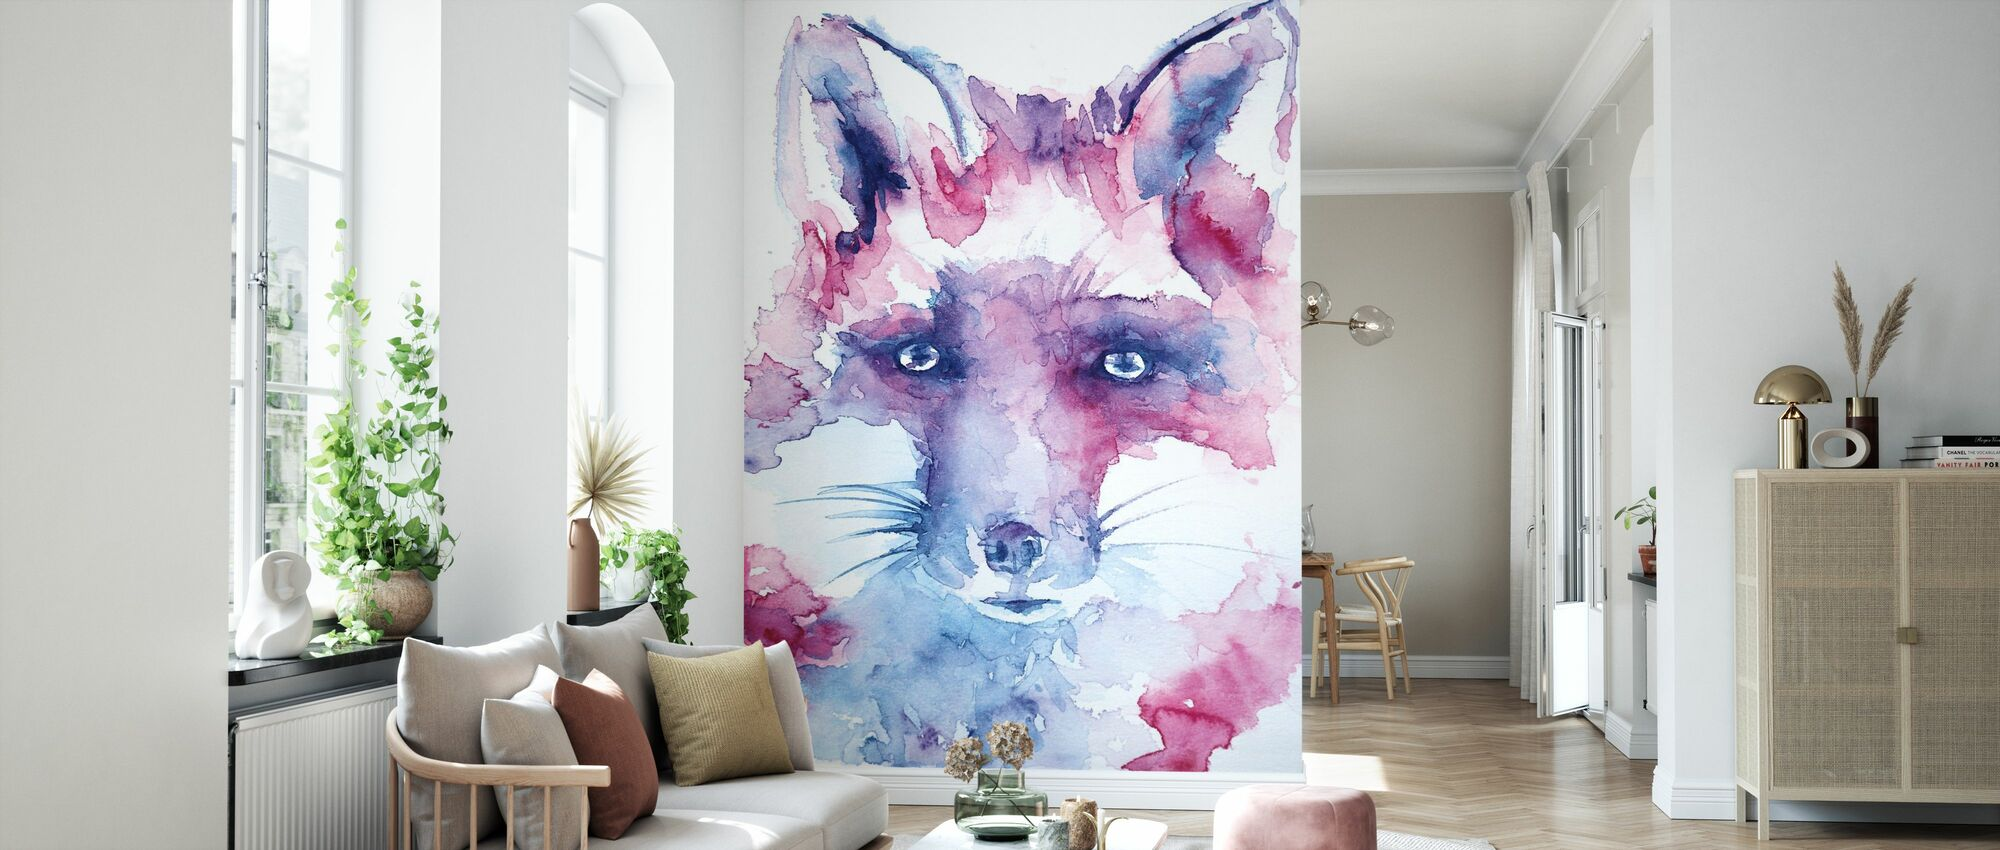 Sweet and Sour - Wallpaper - Living Room